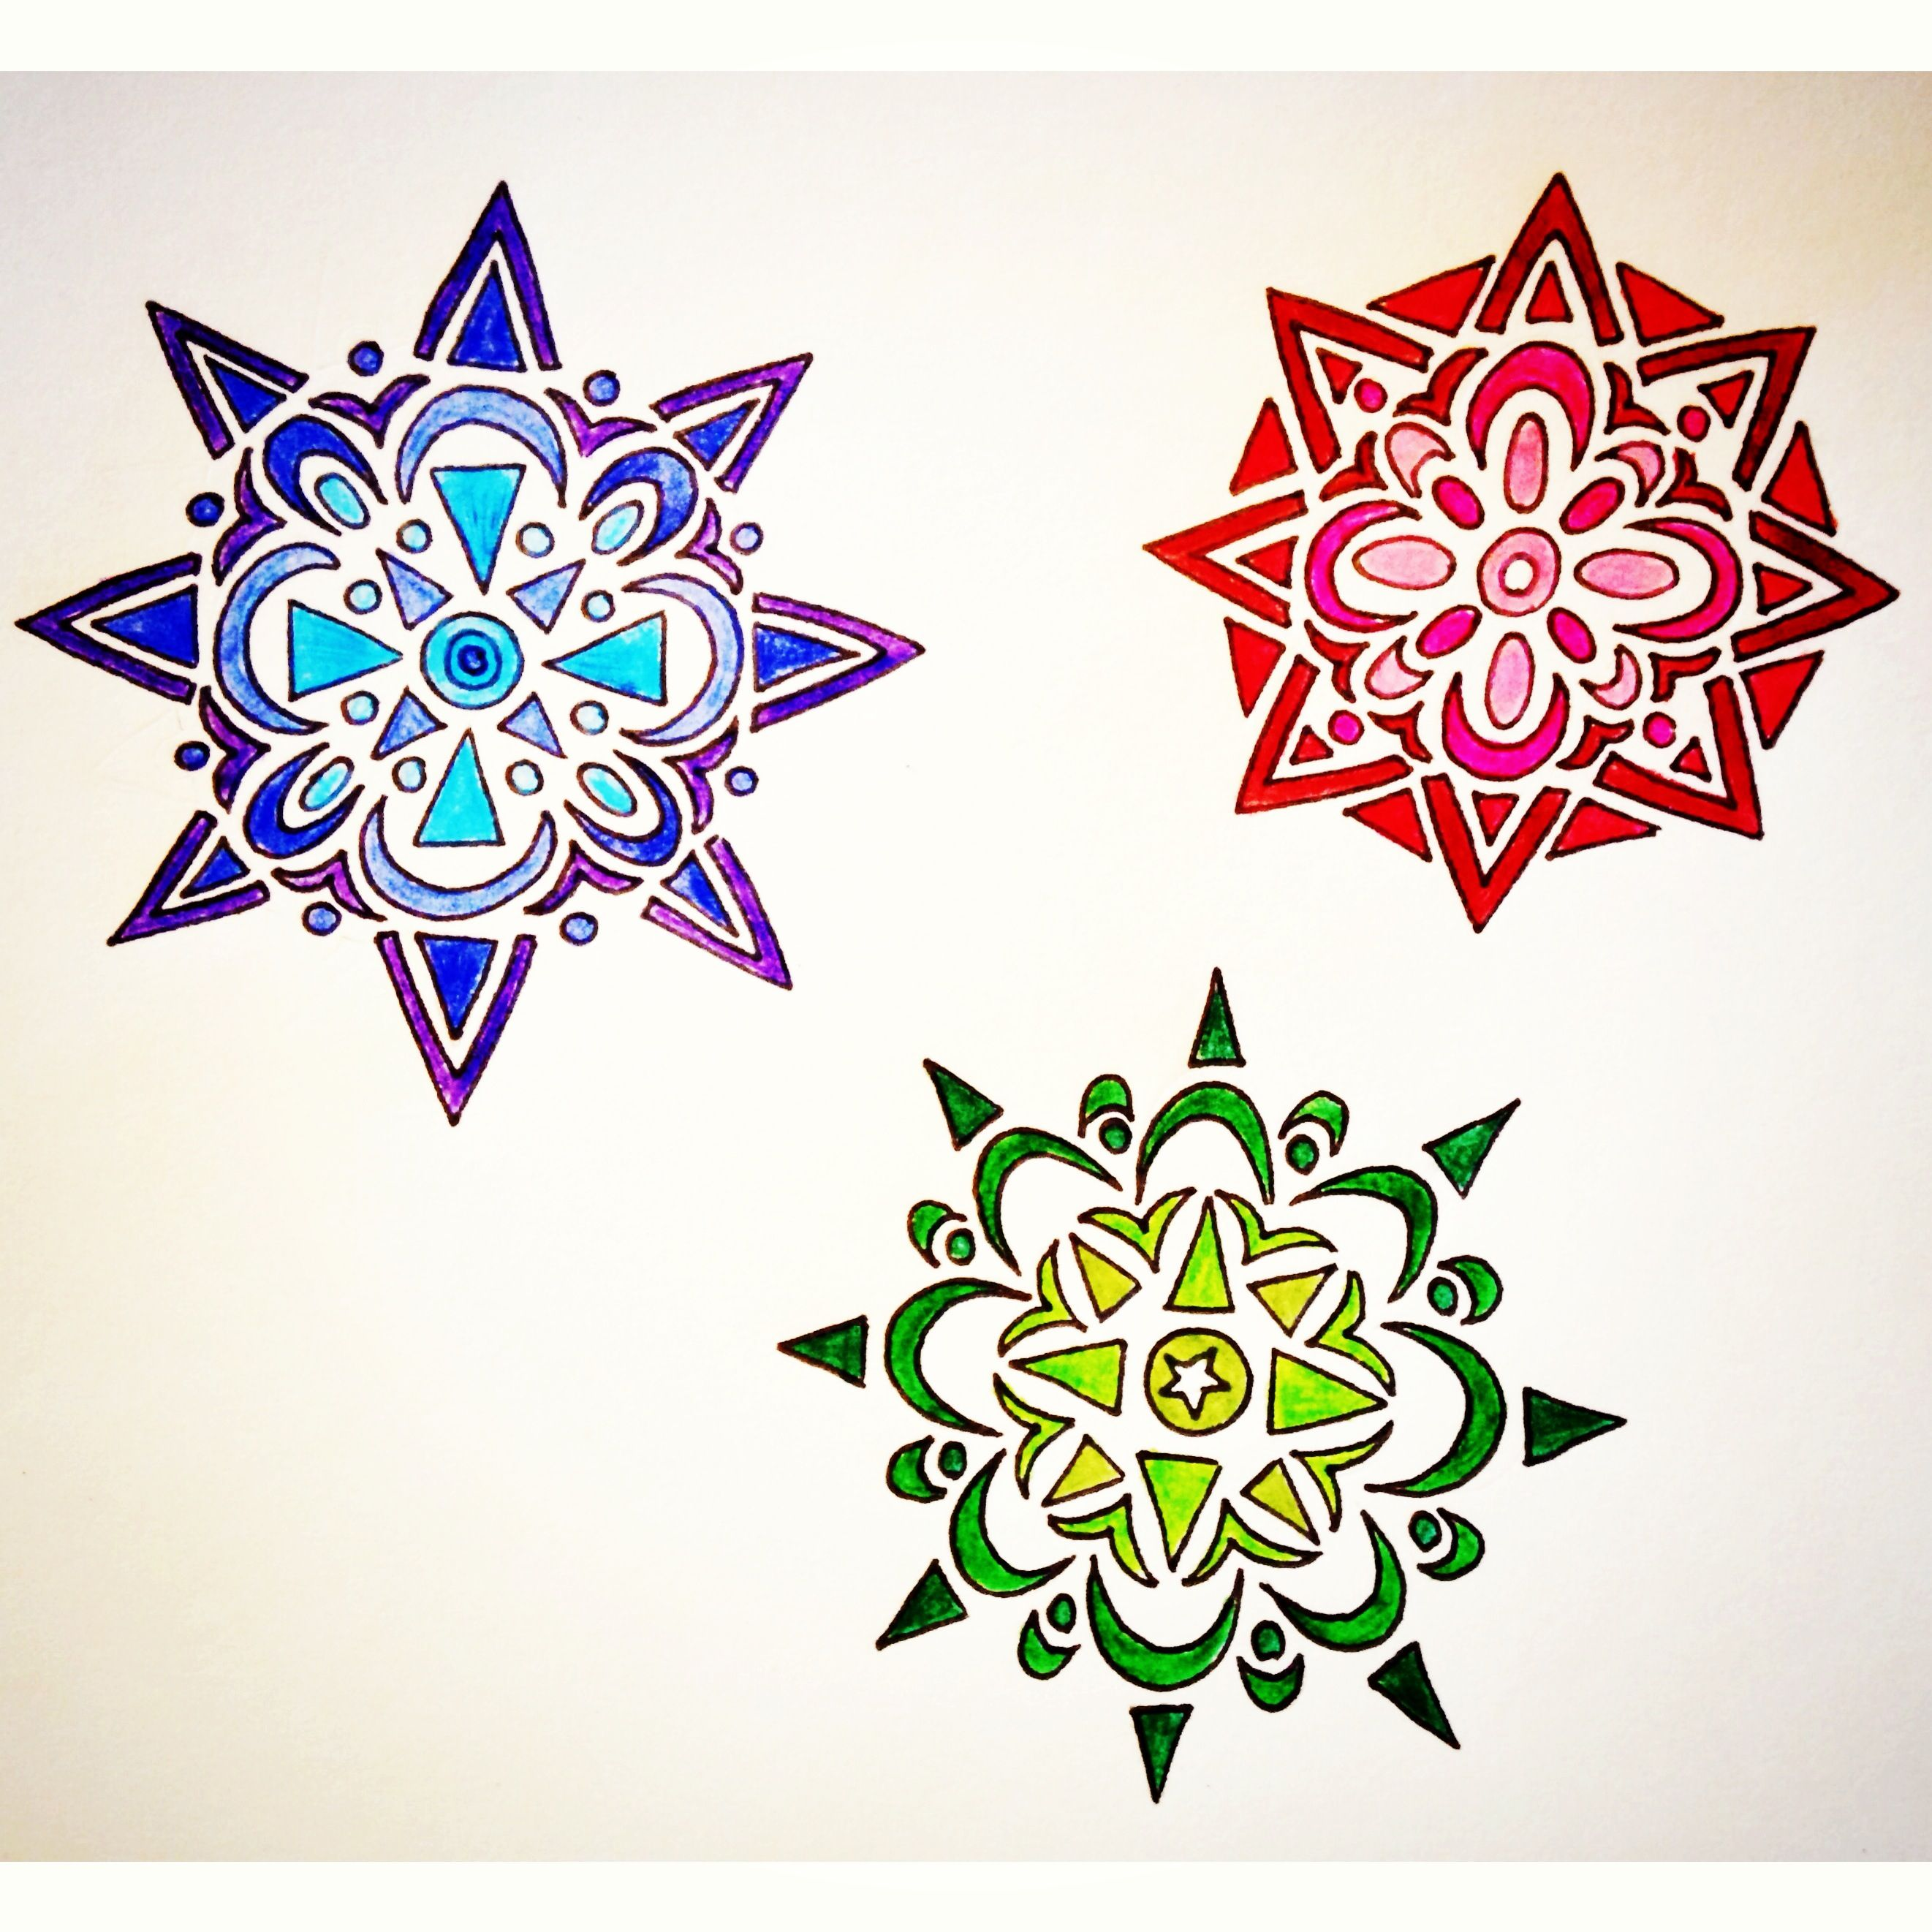 cool designs to draw with sharpie. Sharpie And Color Pencil Design Drawing #doodle #doodling #sharpie #colored #pencil Cool Designs To Draw With